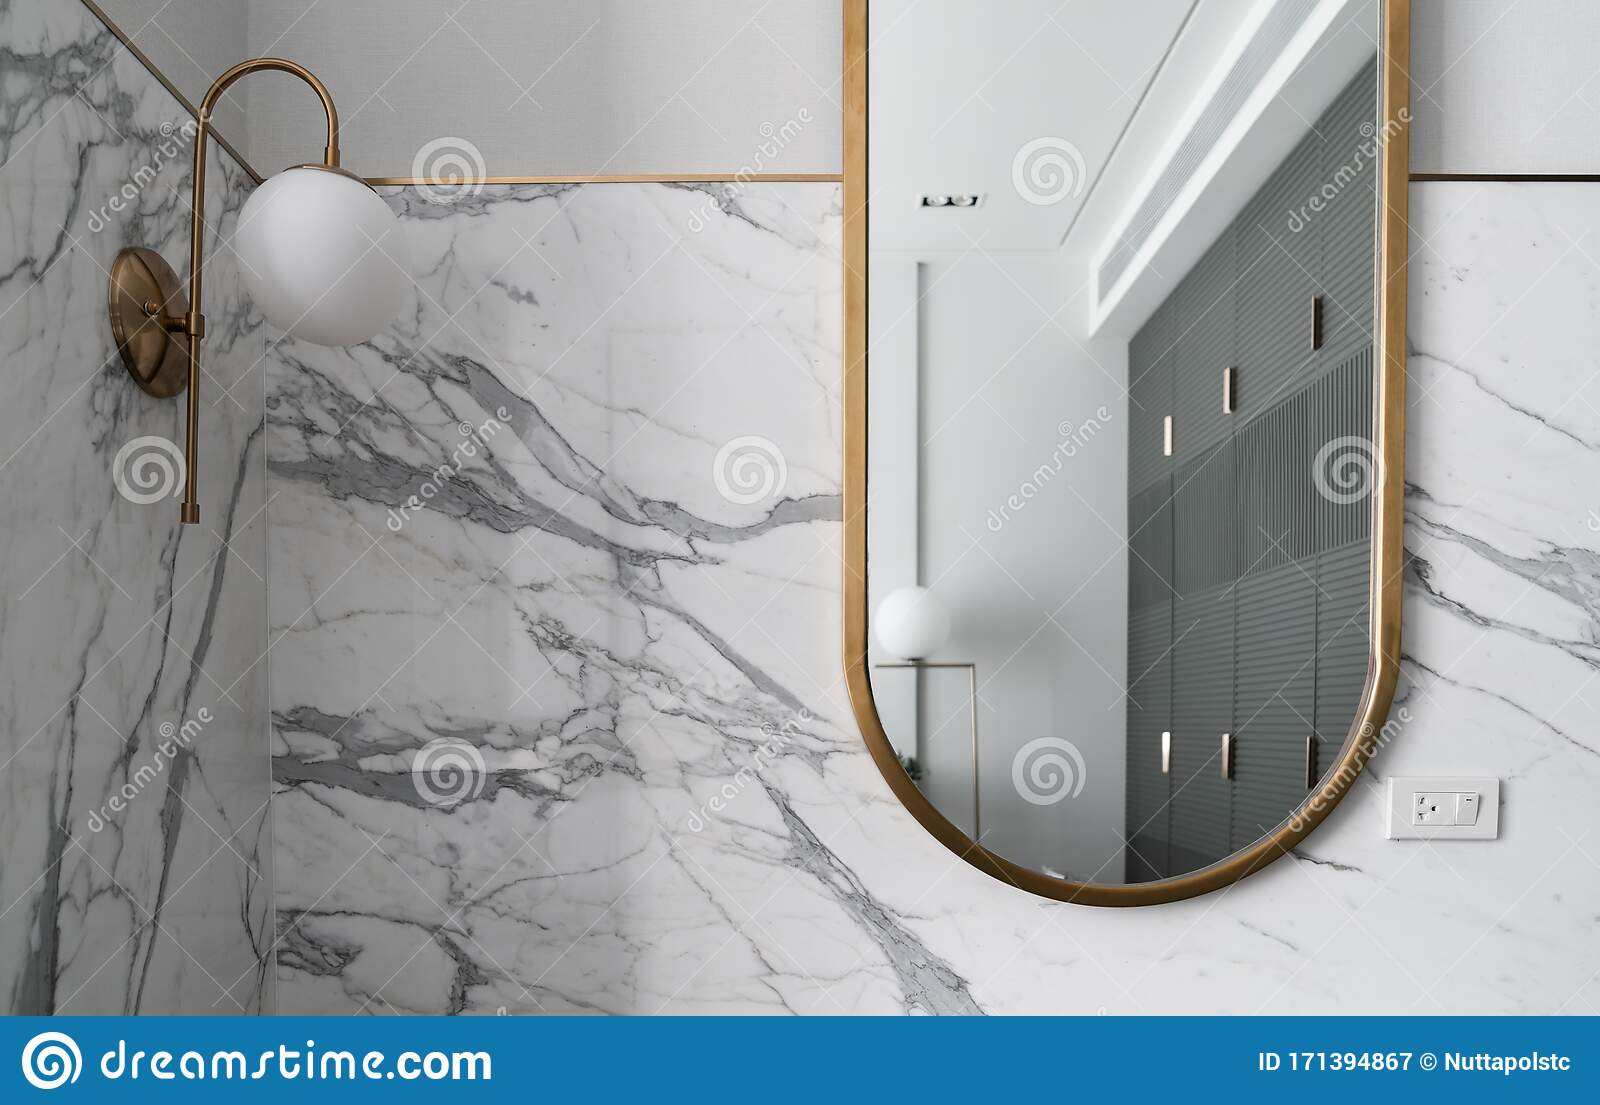 Composition Of Gold Stainless Mirror With White Marble Wall And Gold Wall Lamp Interior Design Background Stock Image Image Of Metal Minimal 171394867